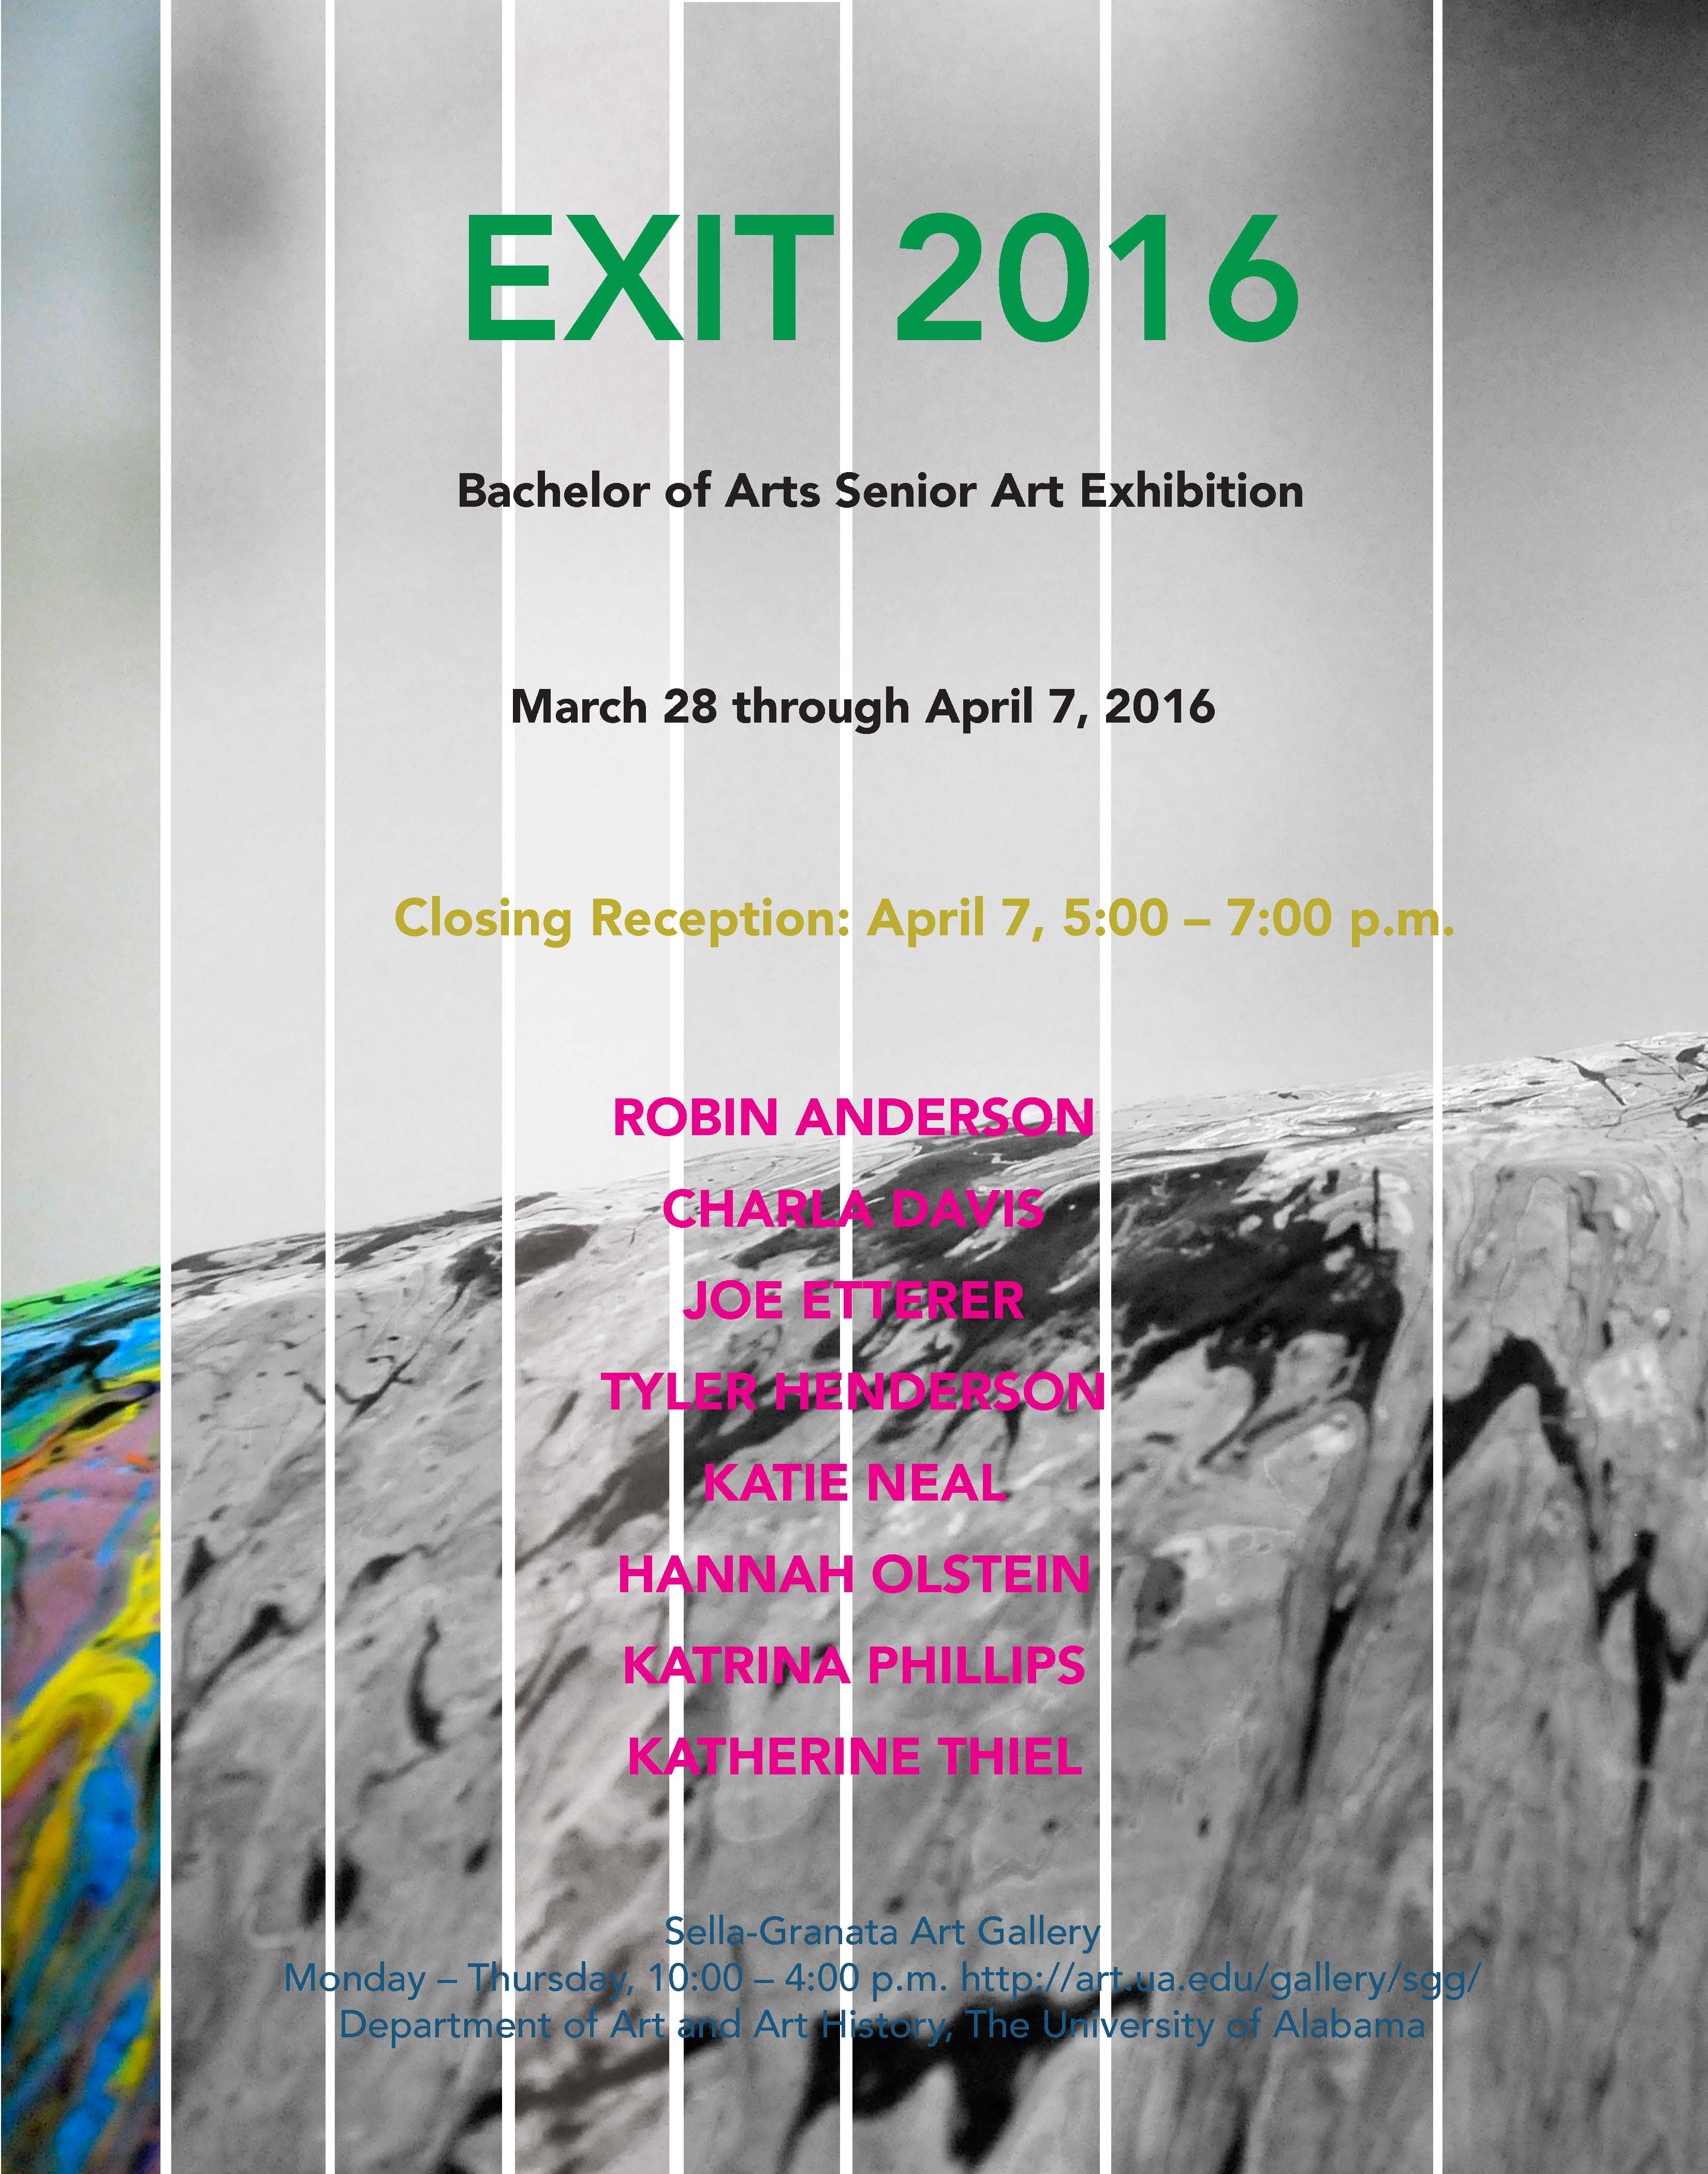 EXIT 2016 BA Senior Exhibition poster